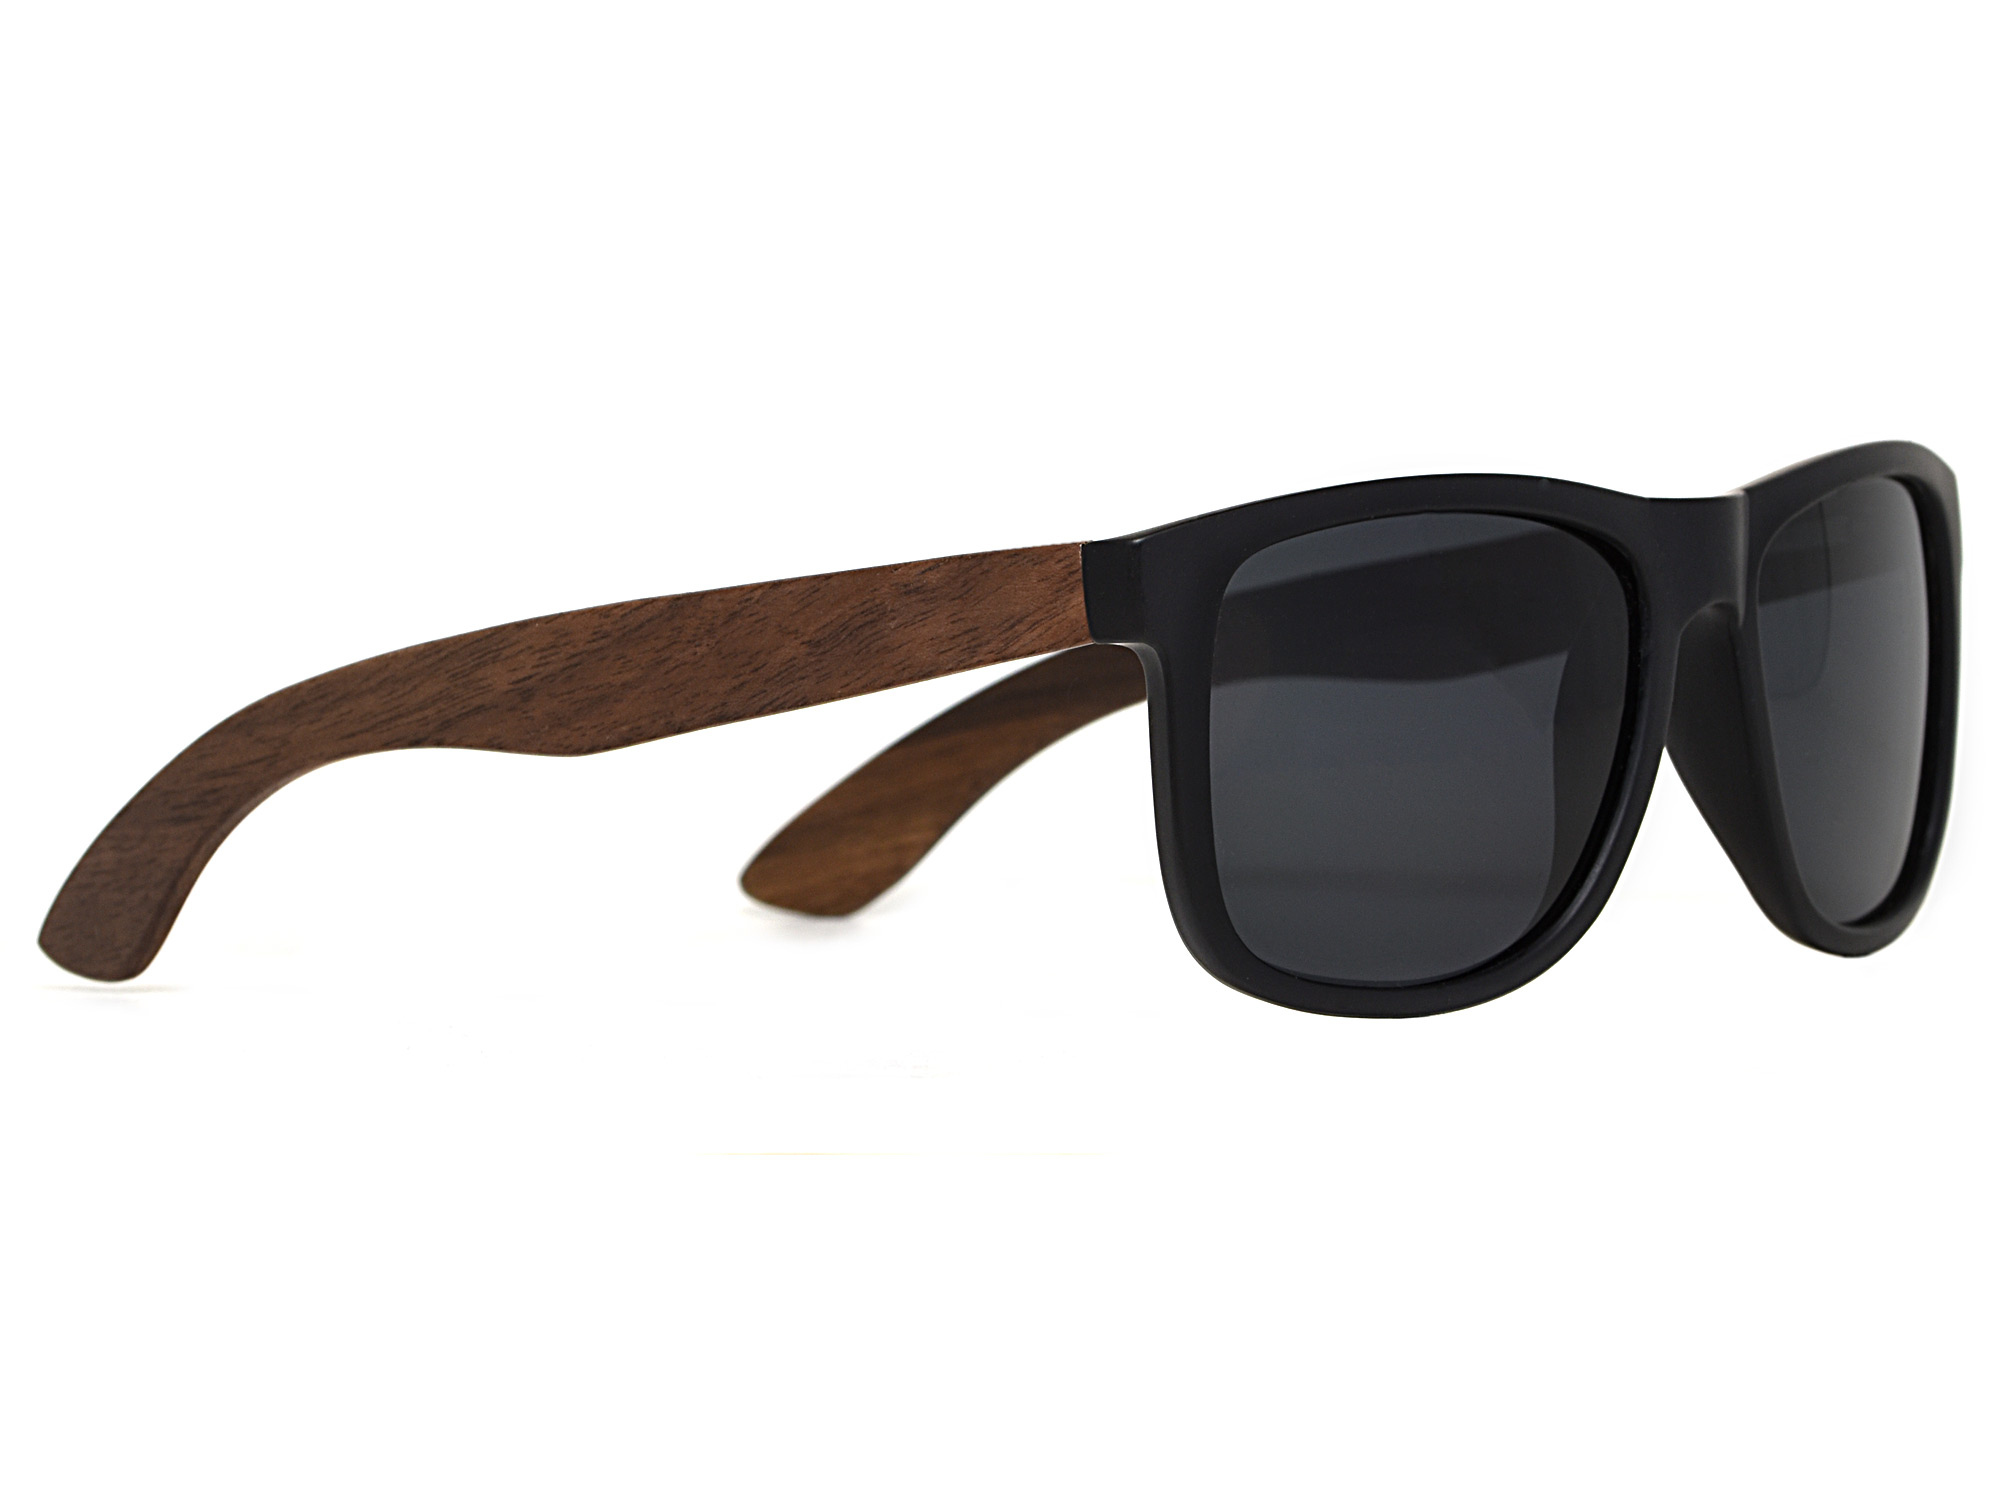 Square walnut wood sunglasses with black polarized lenses right